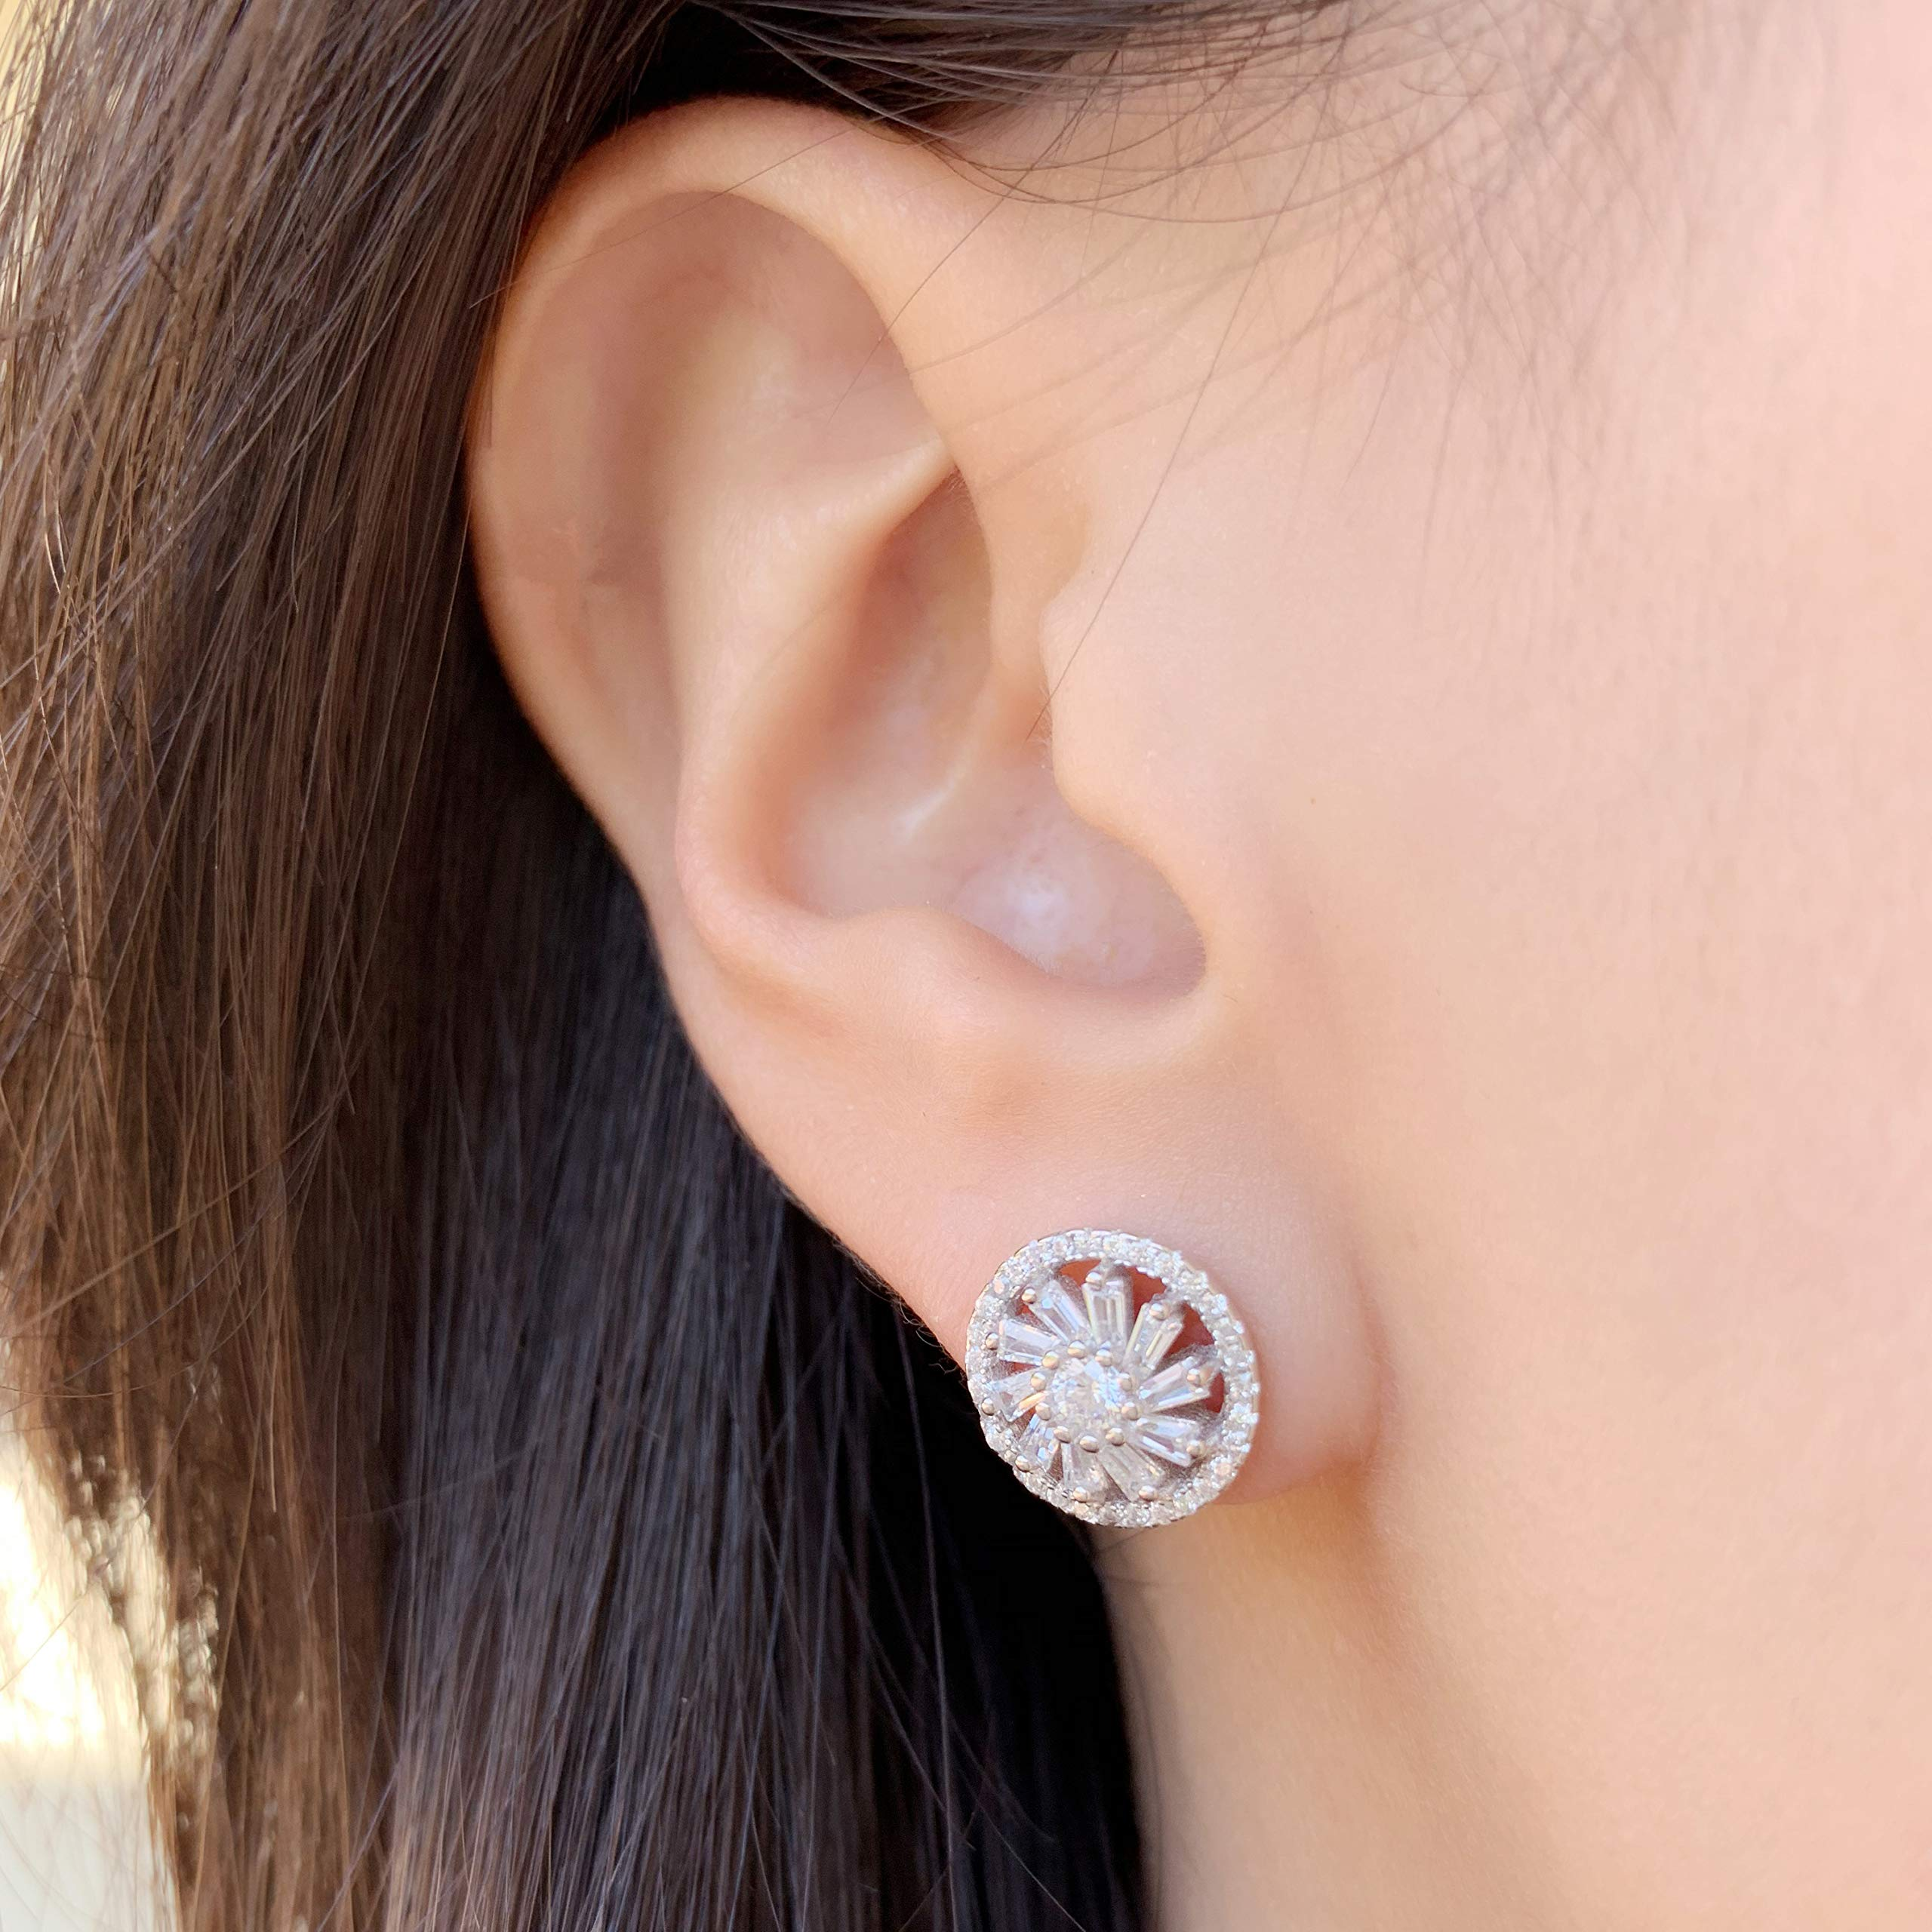 Rhodium-Plated Sterling Silver Cubic Zirconia Double Halo Stud Earrings